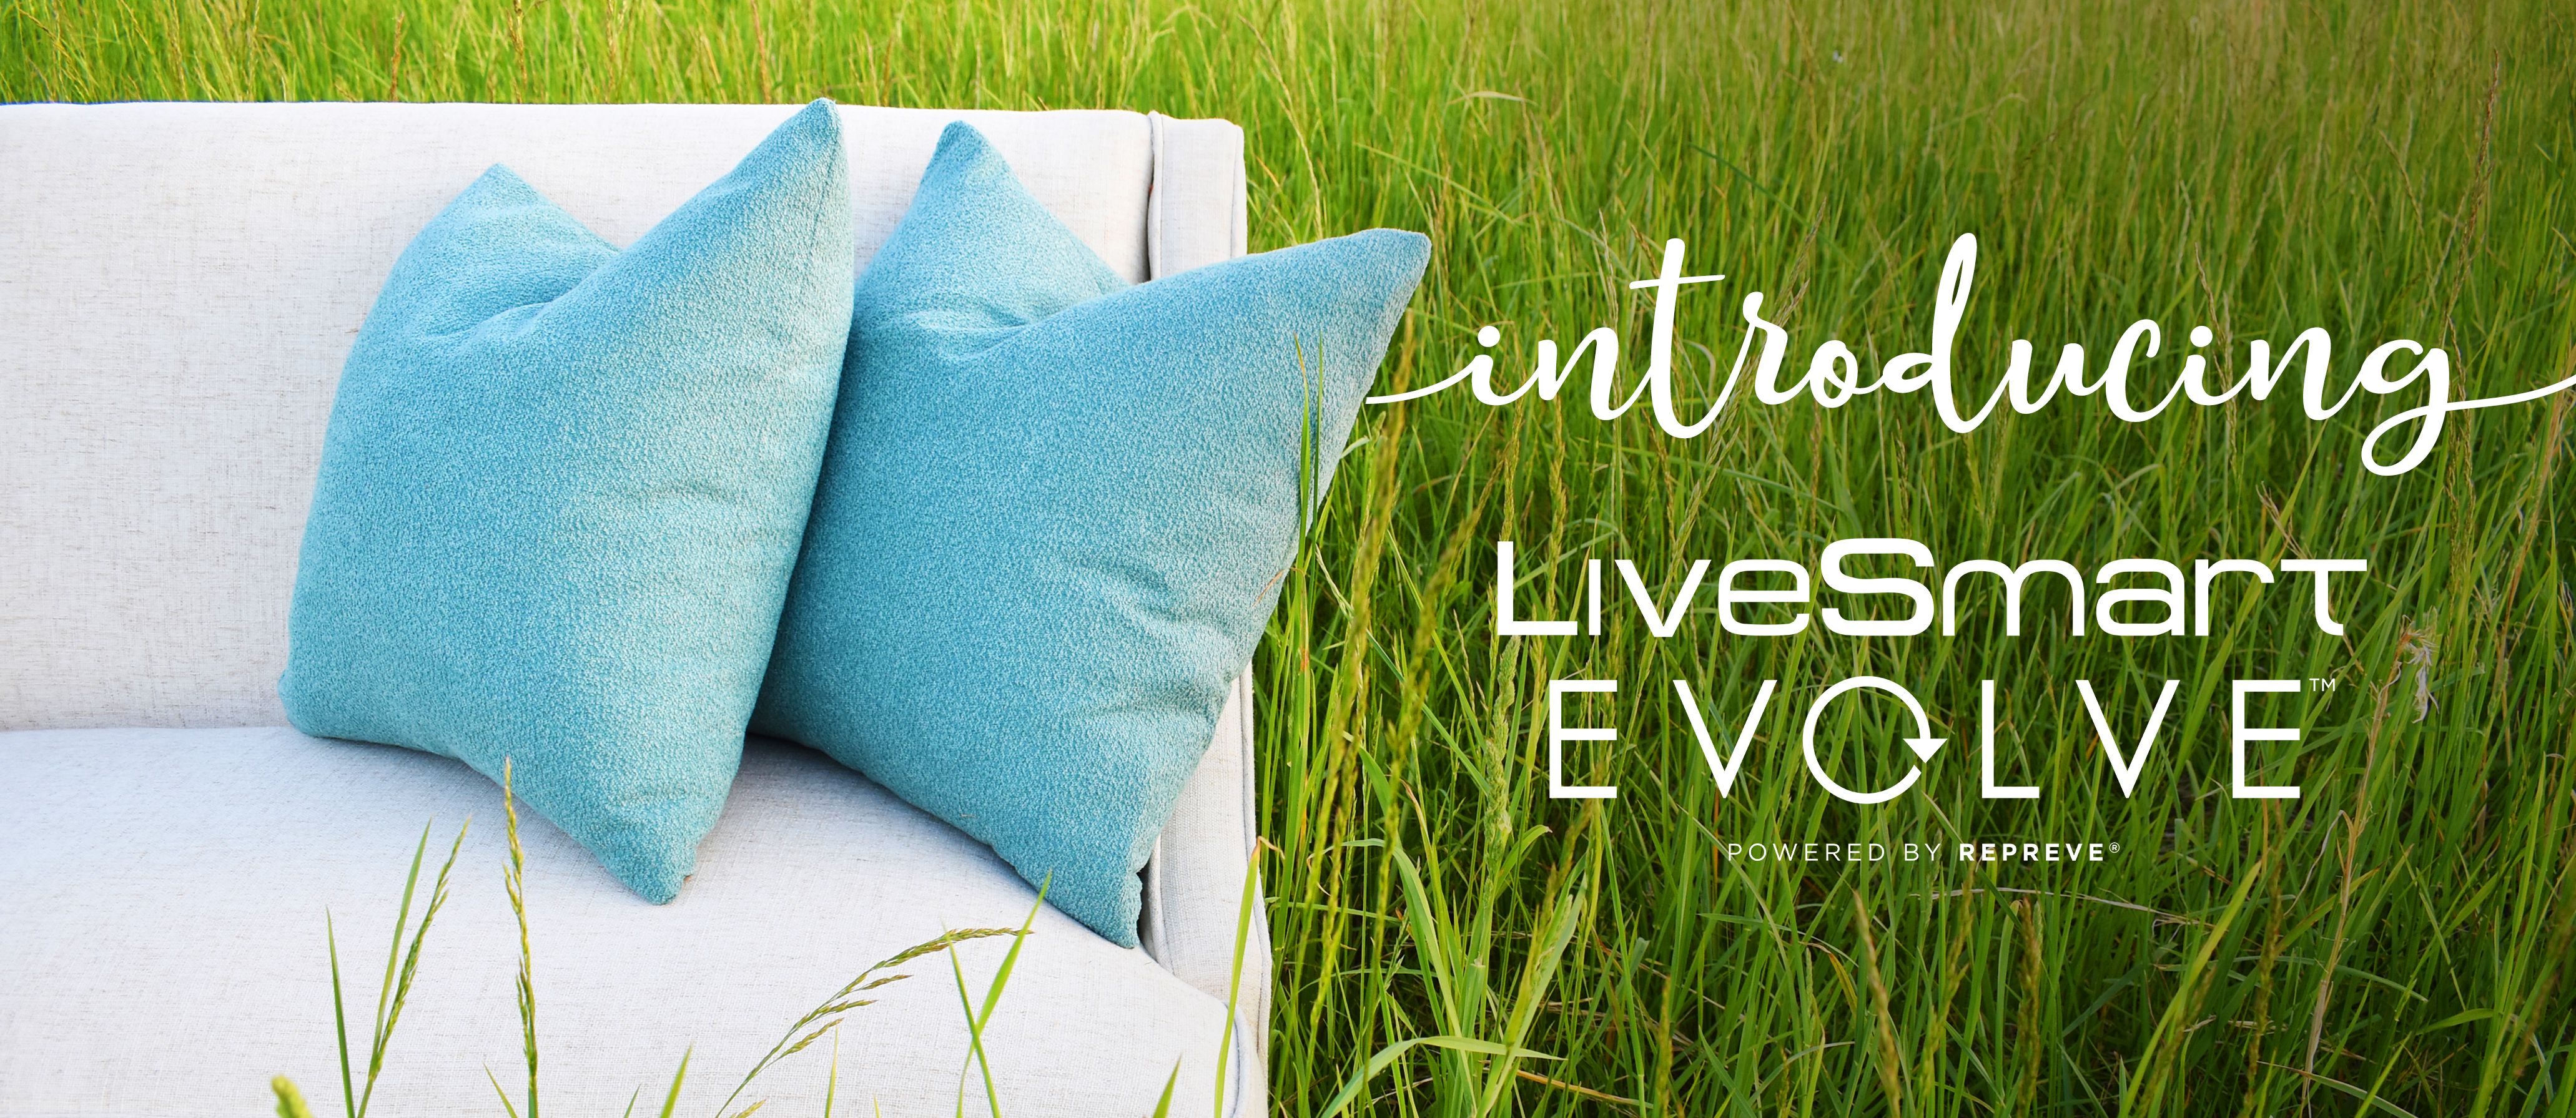 CLP_LS_HOME_Slider_EVOLVE_05.19_R1